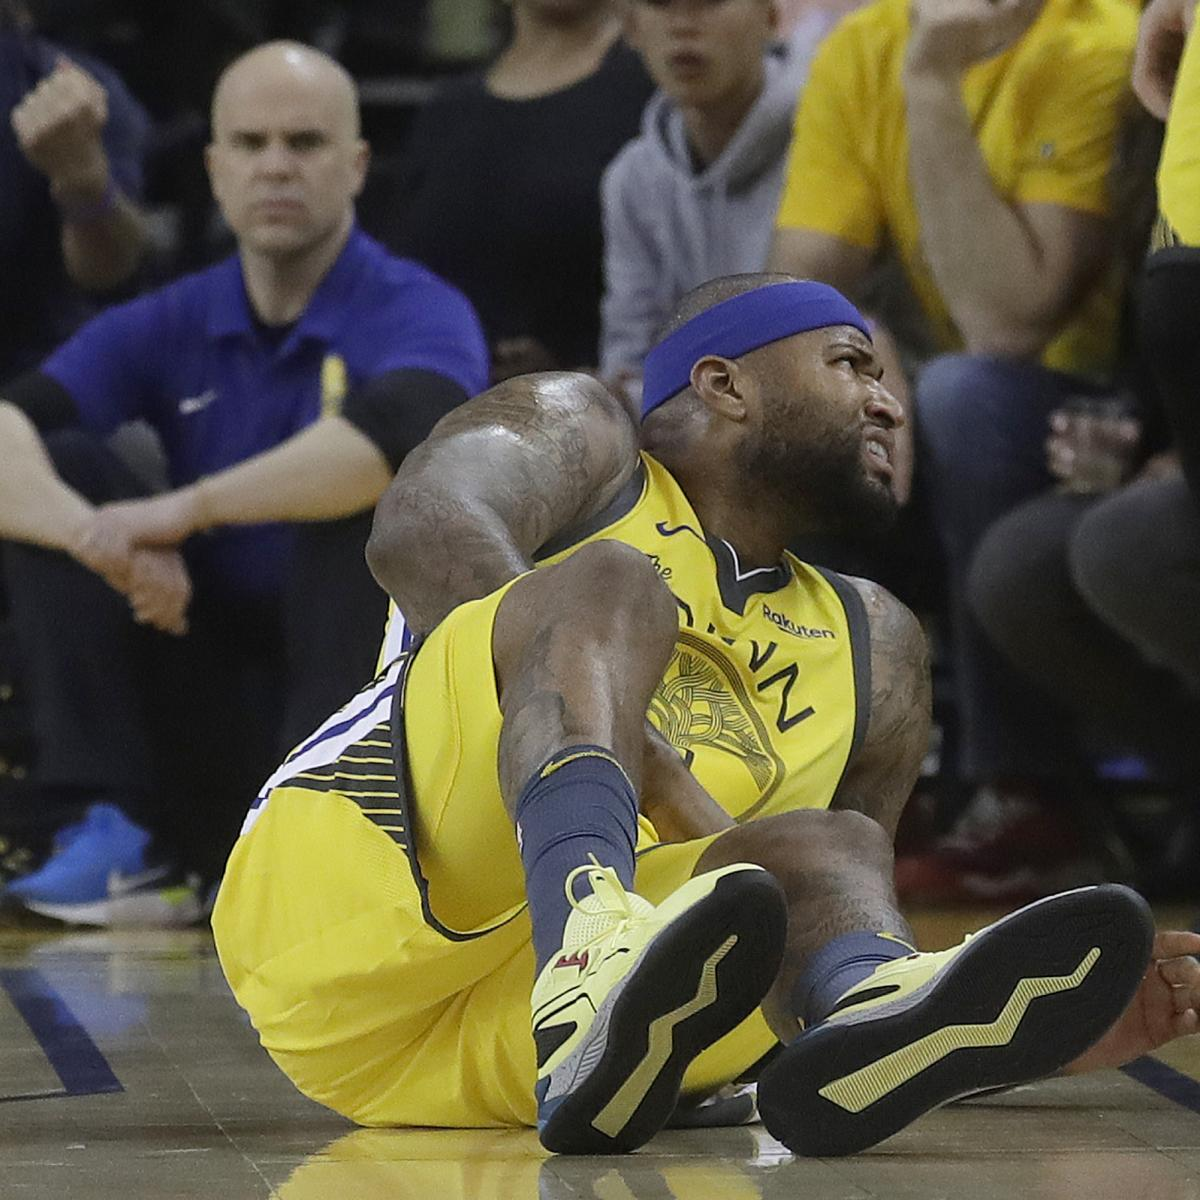 cfb8906d2bb Golden State Warriors coach Steve Kerr told reporters DeMarcus Cousins  could return at some point during